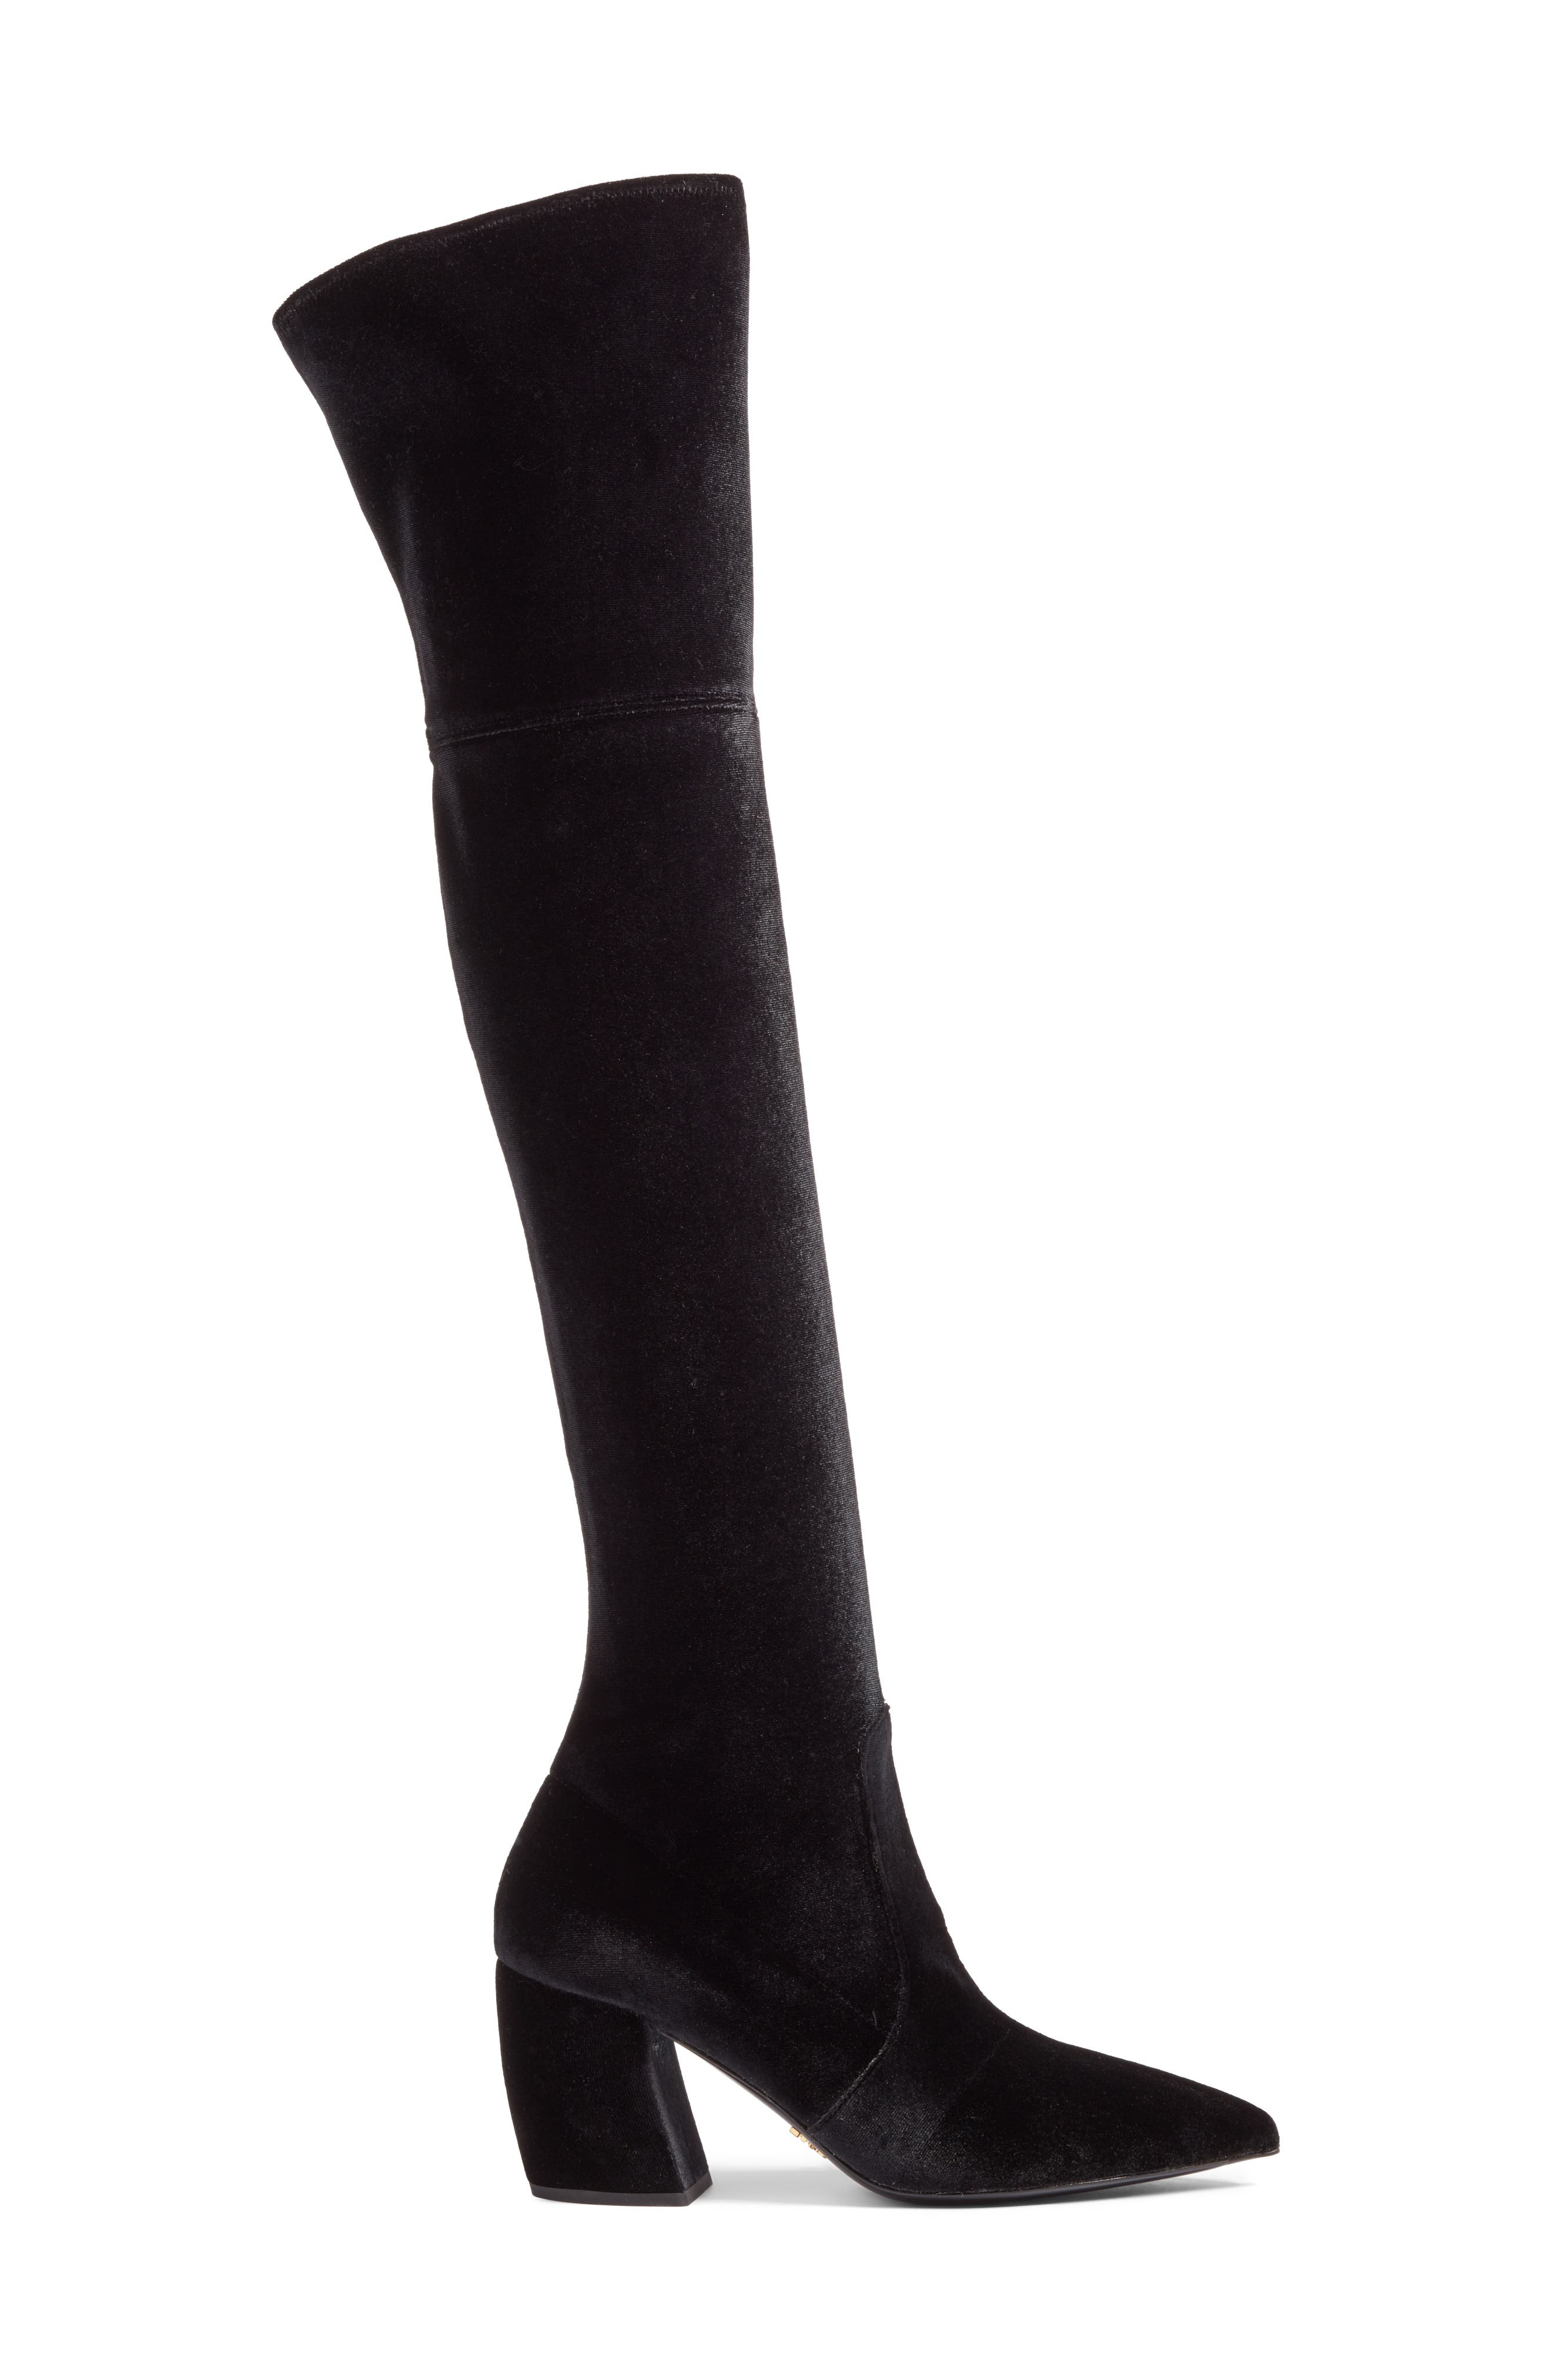 Over the Knee Boot,                             Alternate thumbnail 3, color,                             Black